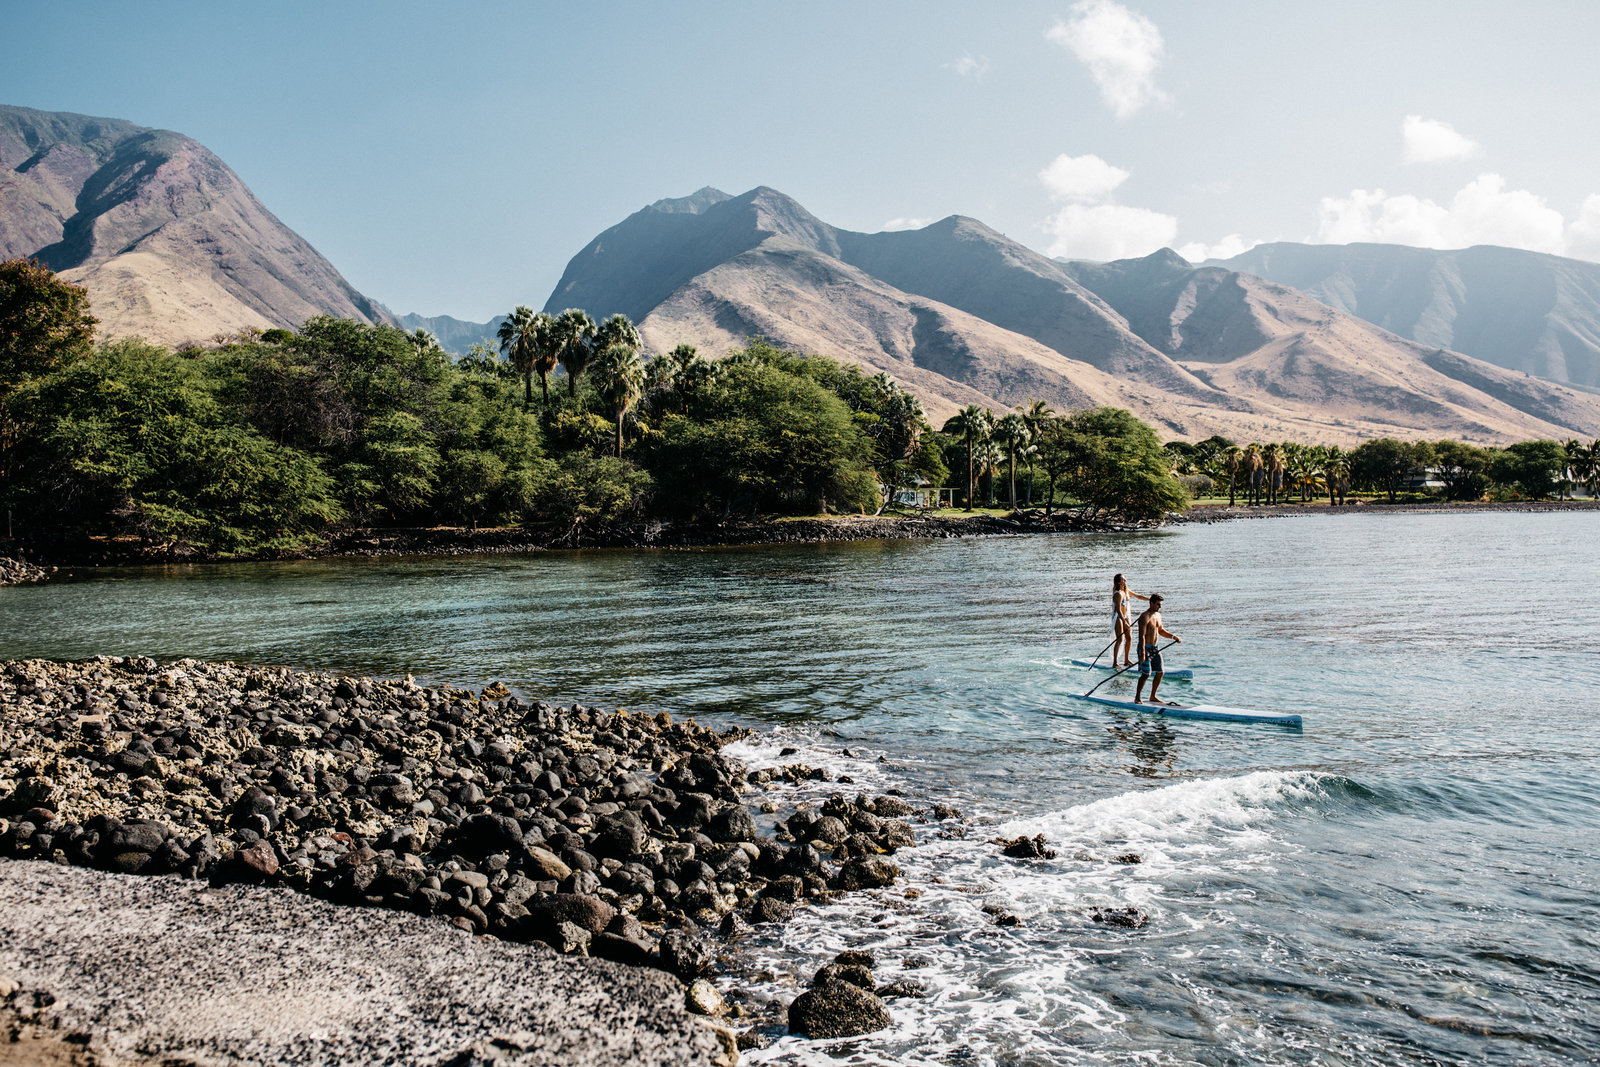 paddle board engagement, unique engagement idea, maui locations, maui wedding